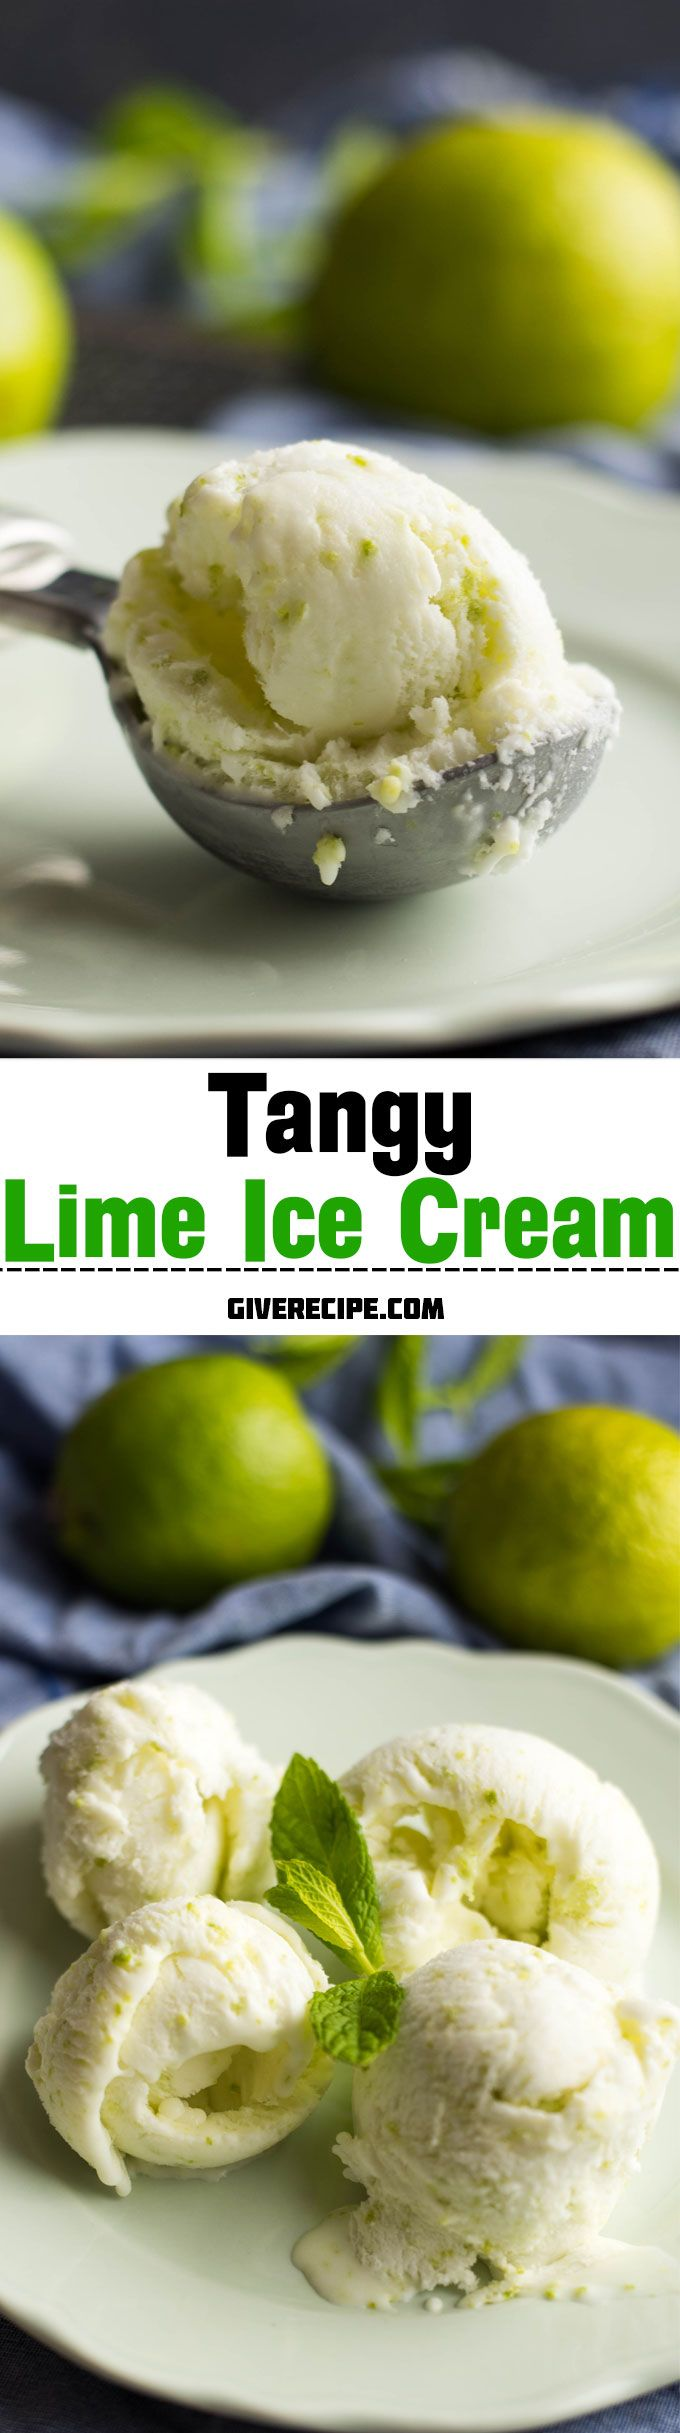 A PERFECT refreshing ice cream with lime juice and zest. EASY to make!   giverecipe.com   #lime #icecream